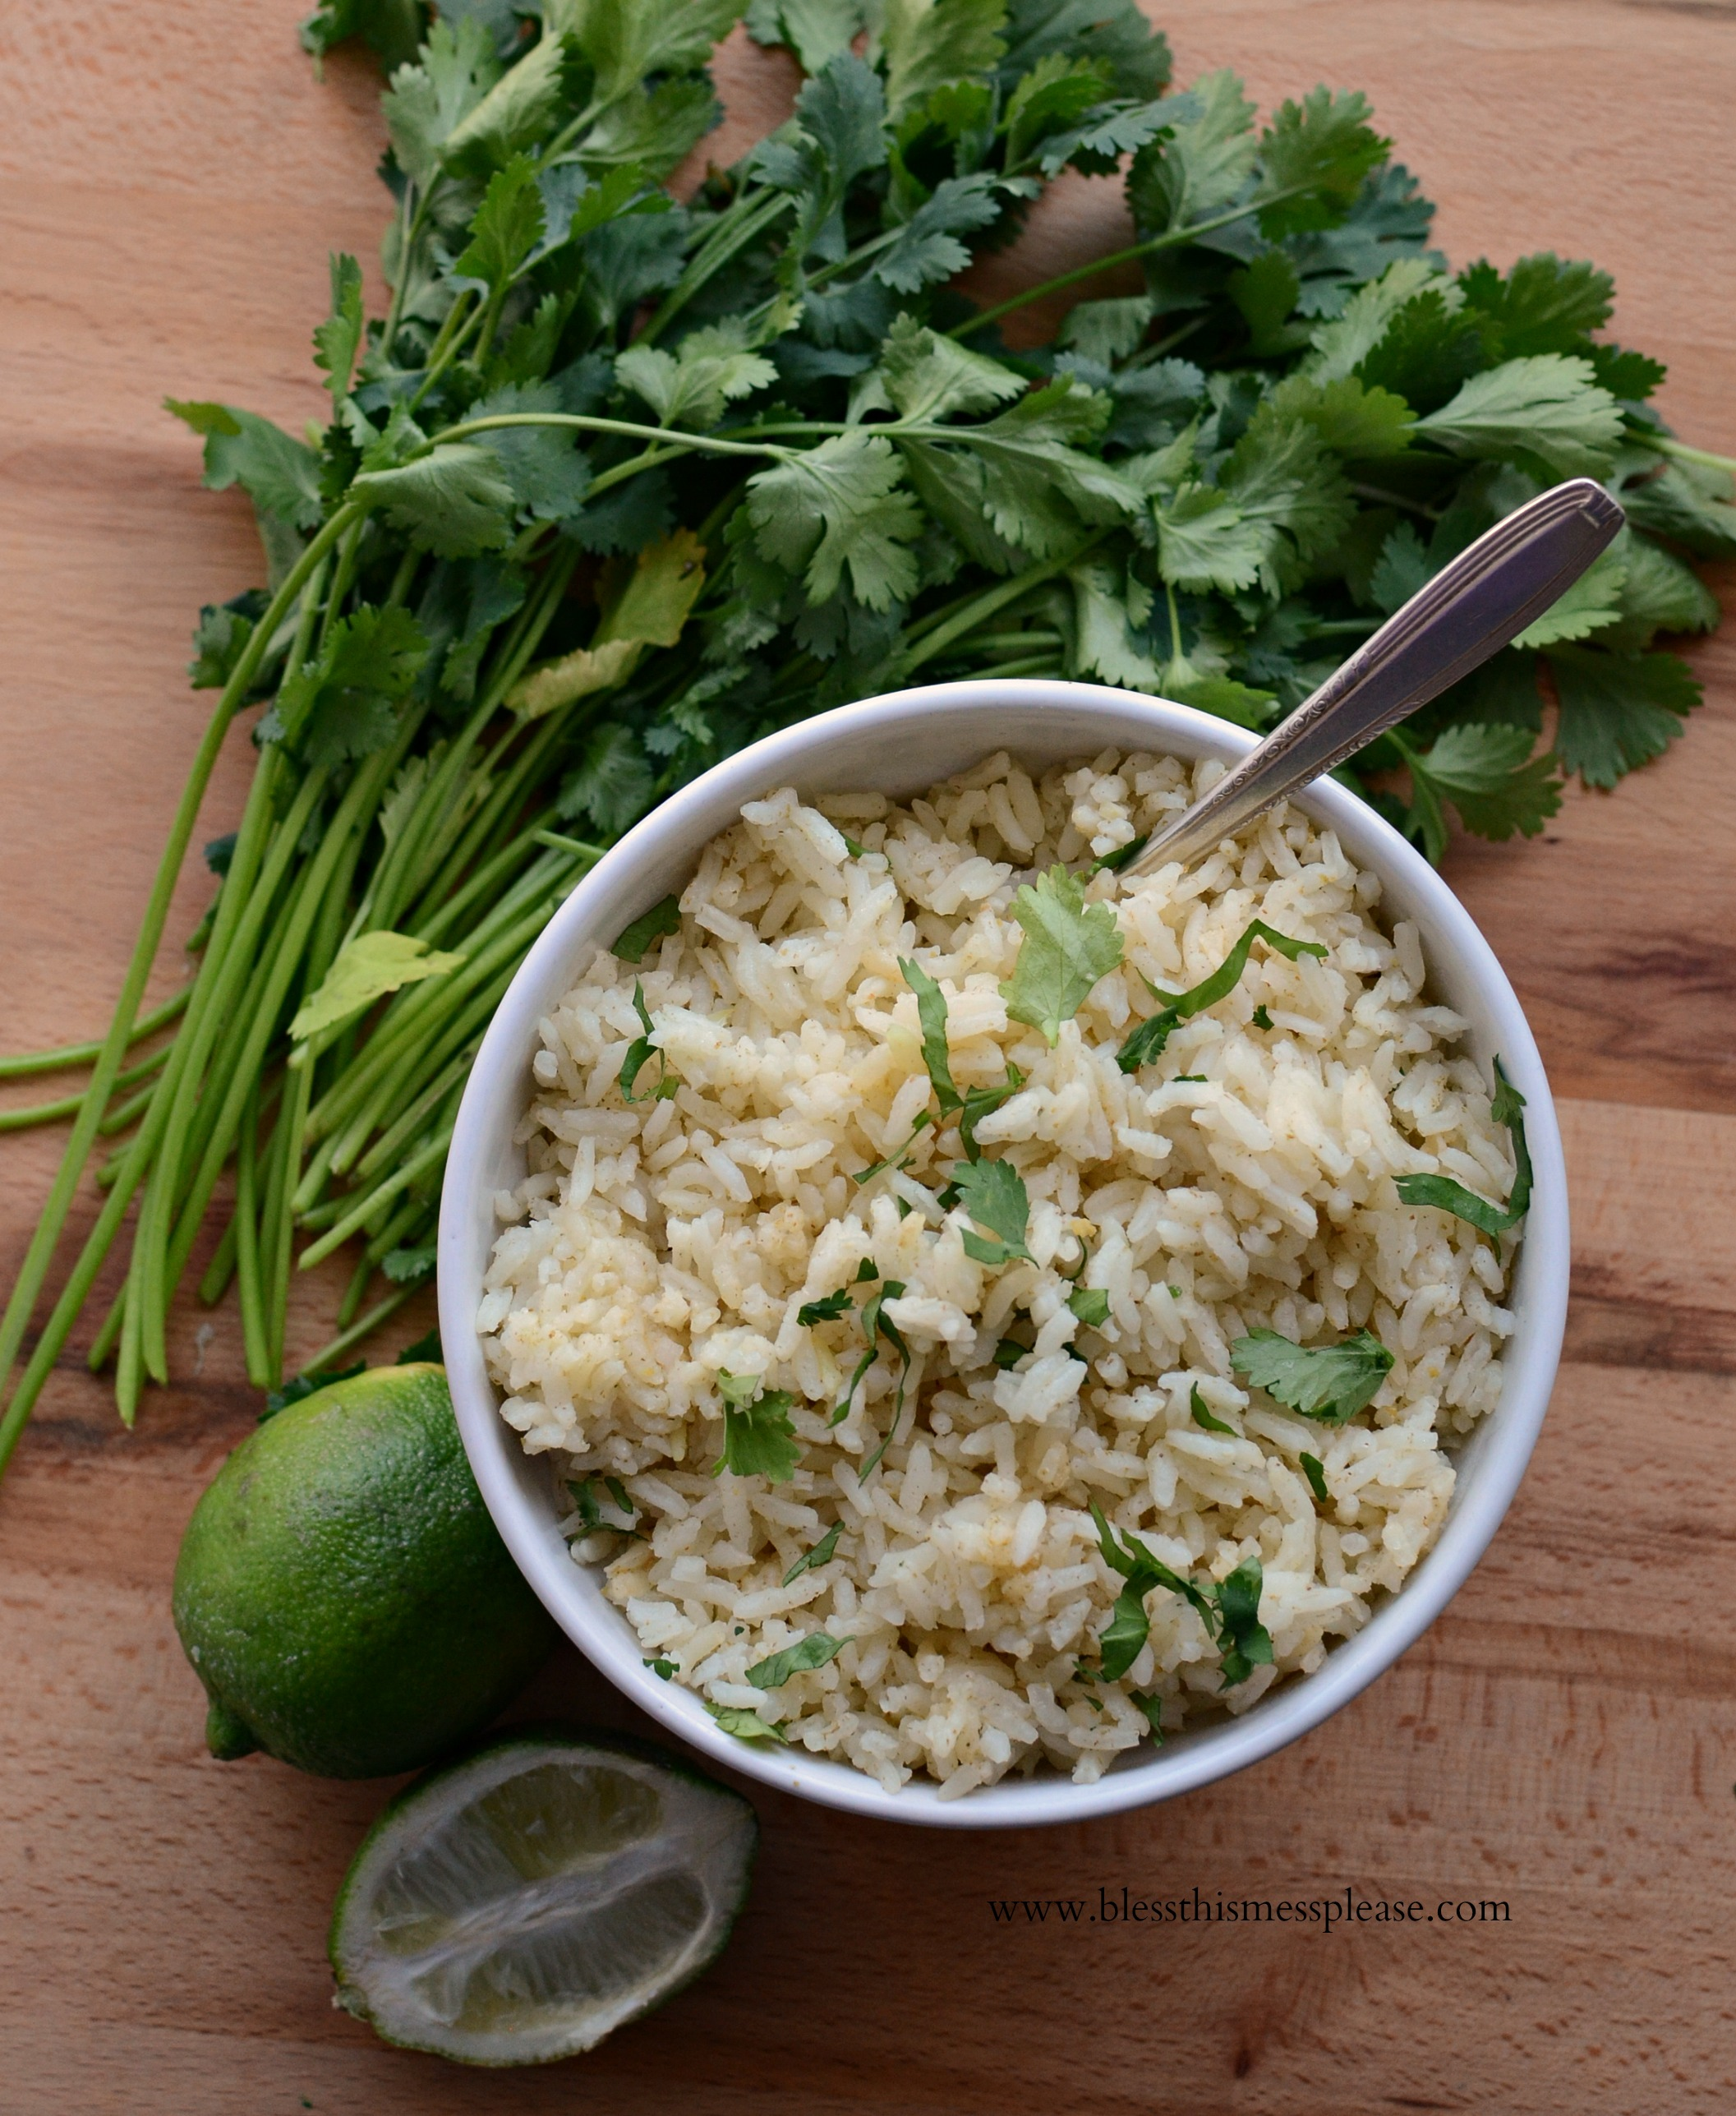 Santa fe rice with cilantro and garlic